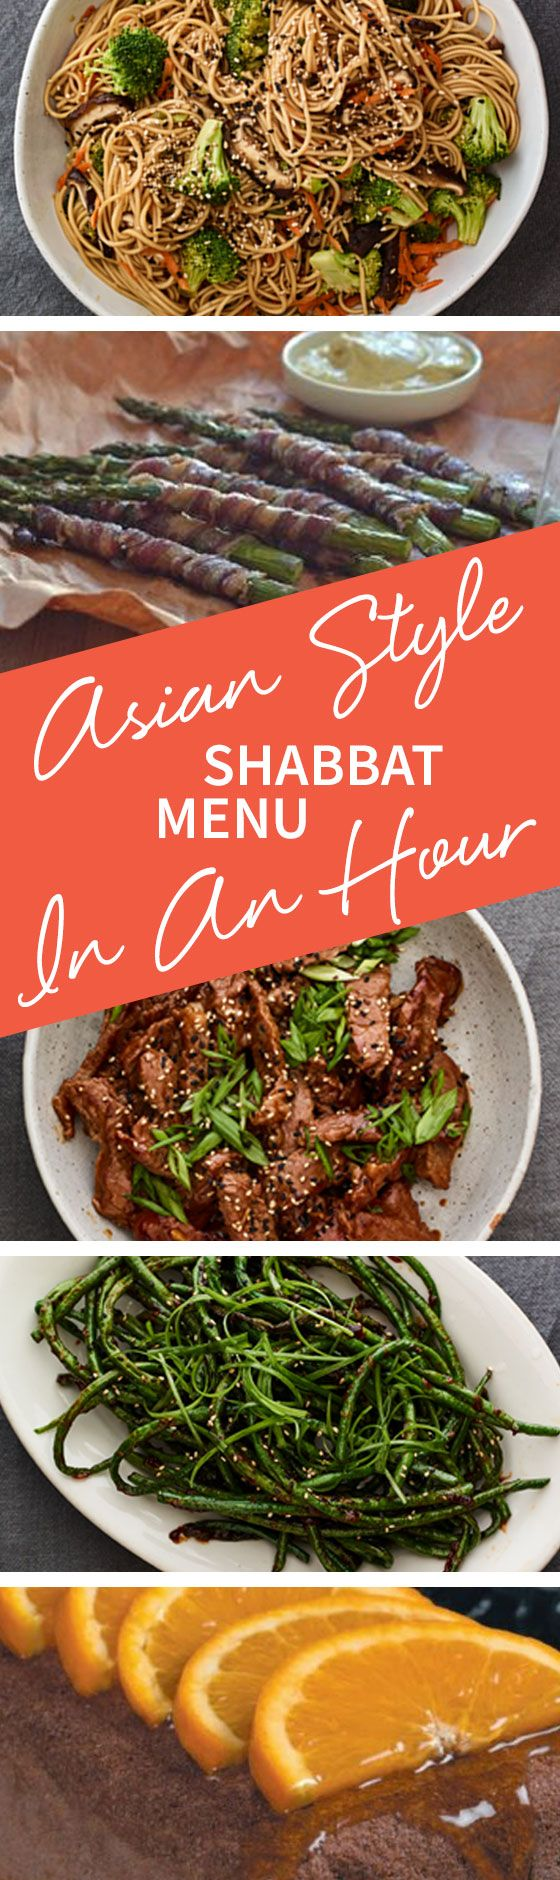 The main course of this Shabbat menu with Beef, Lo Mein & Long Beans can be made to serve quick! Learn all the recipes we used in our Asian Style Shabbat Menu In An Hour! http://www.joyofkosher.com/2016/12/asian-style-shabbat-menu-in-an-hour/